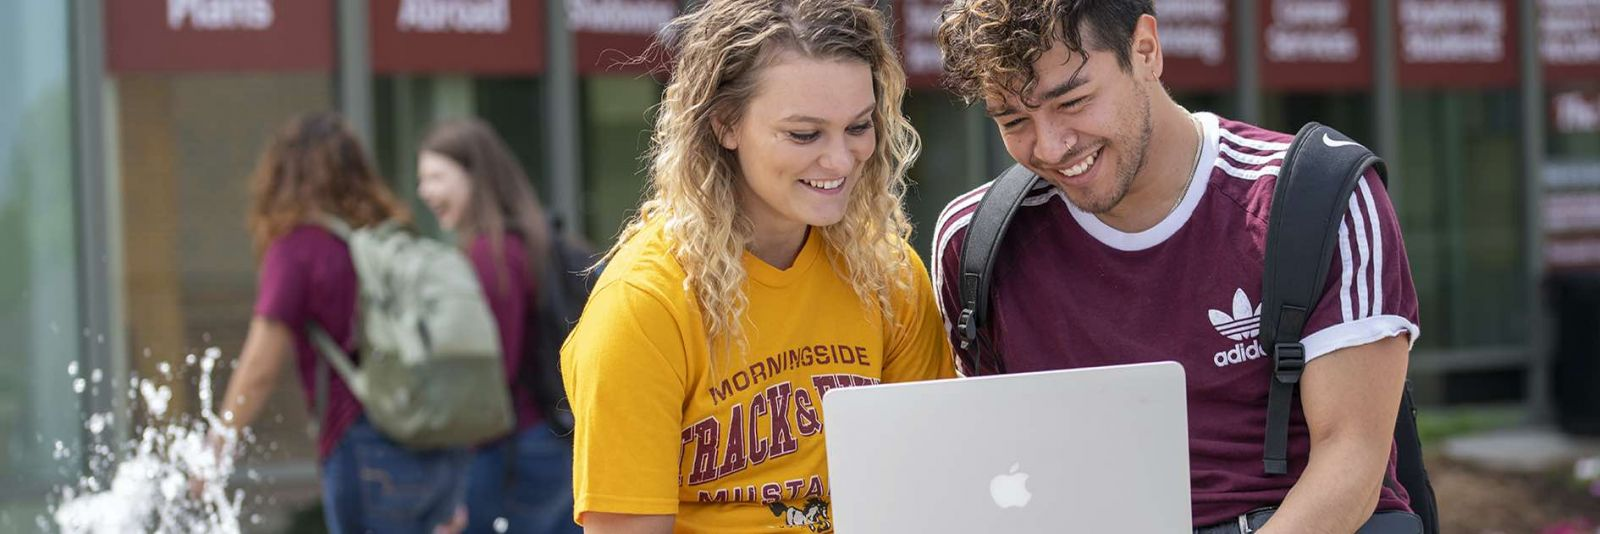 Students look at laptop outside by fountain